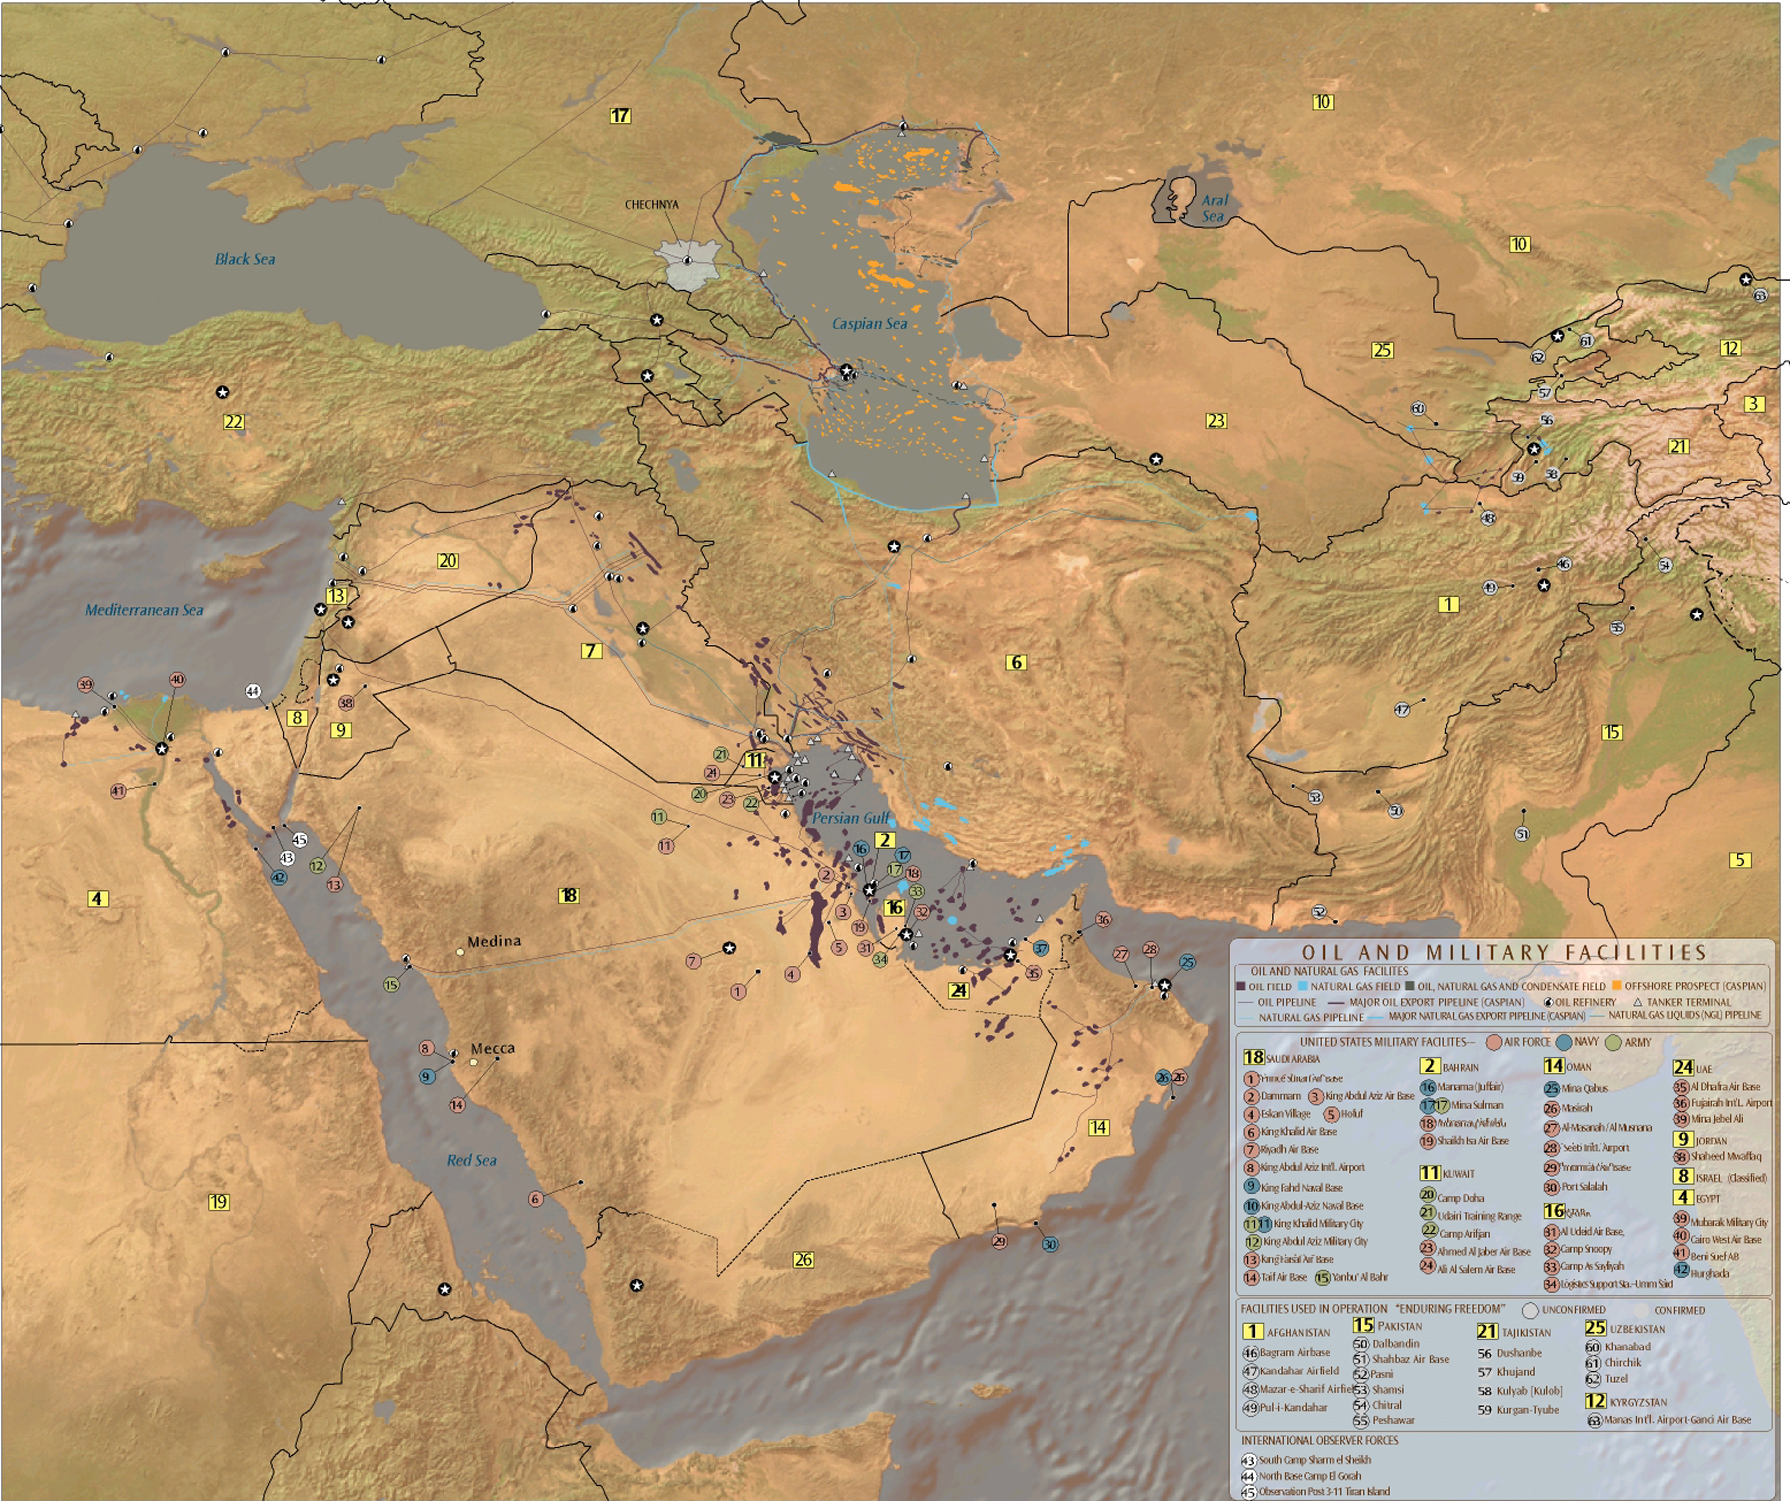 Map Oil And Gas Fields Oil And Gas Pipelines Refineries Export Terminals And Us Military Facilities The Middle East Information